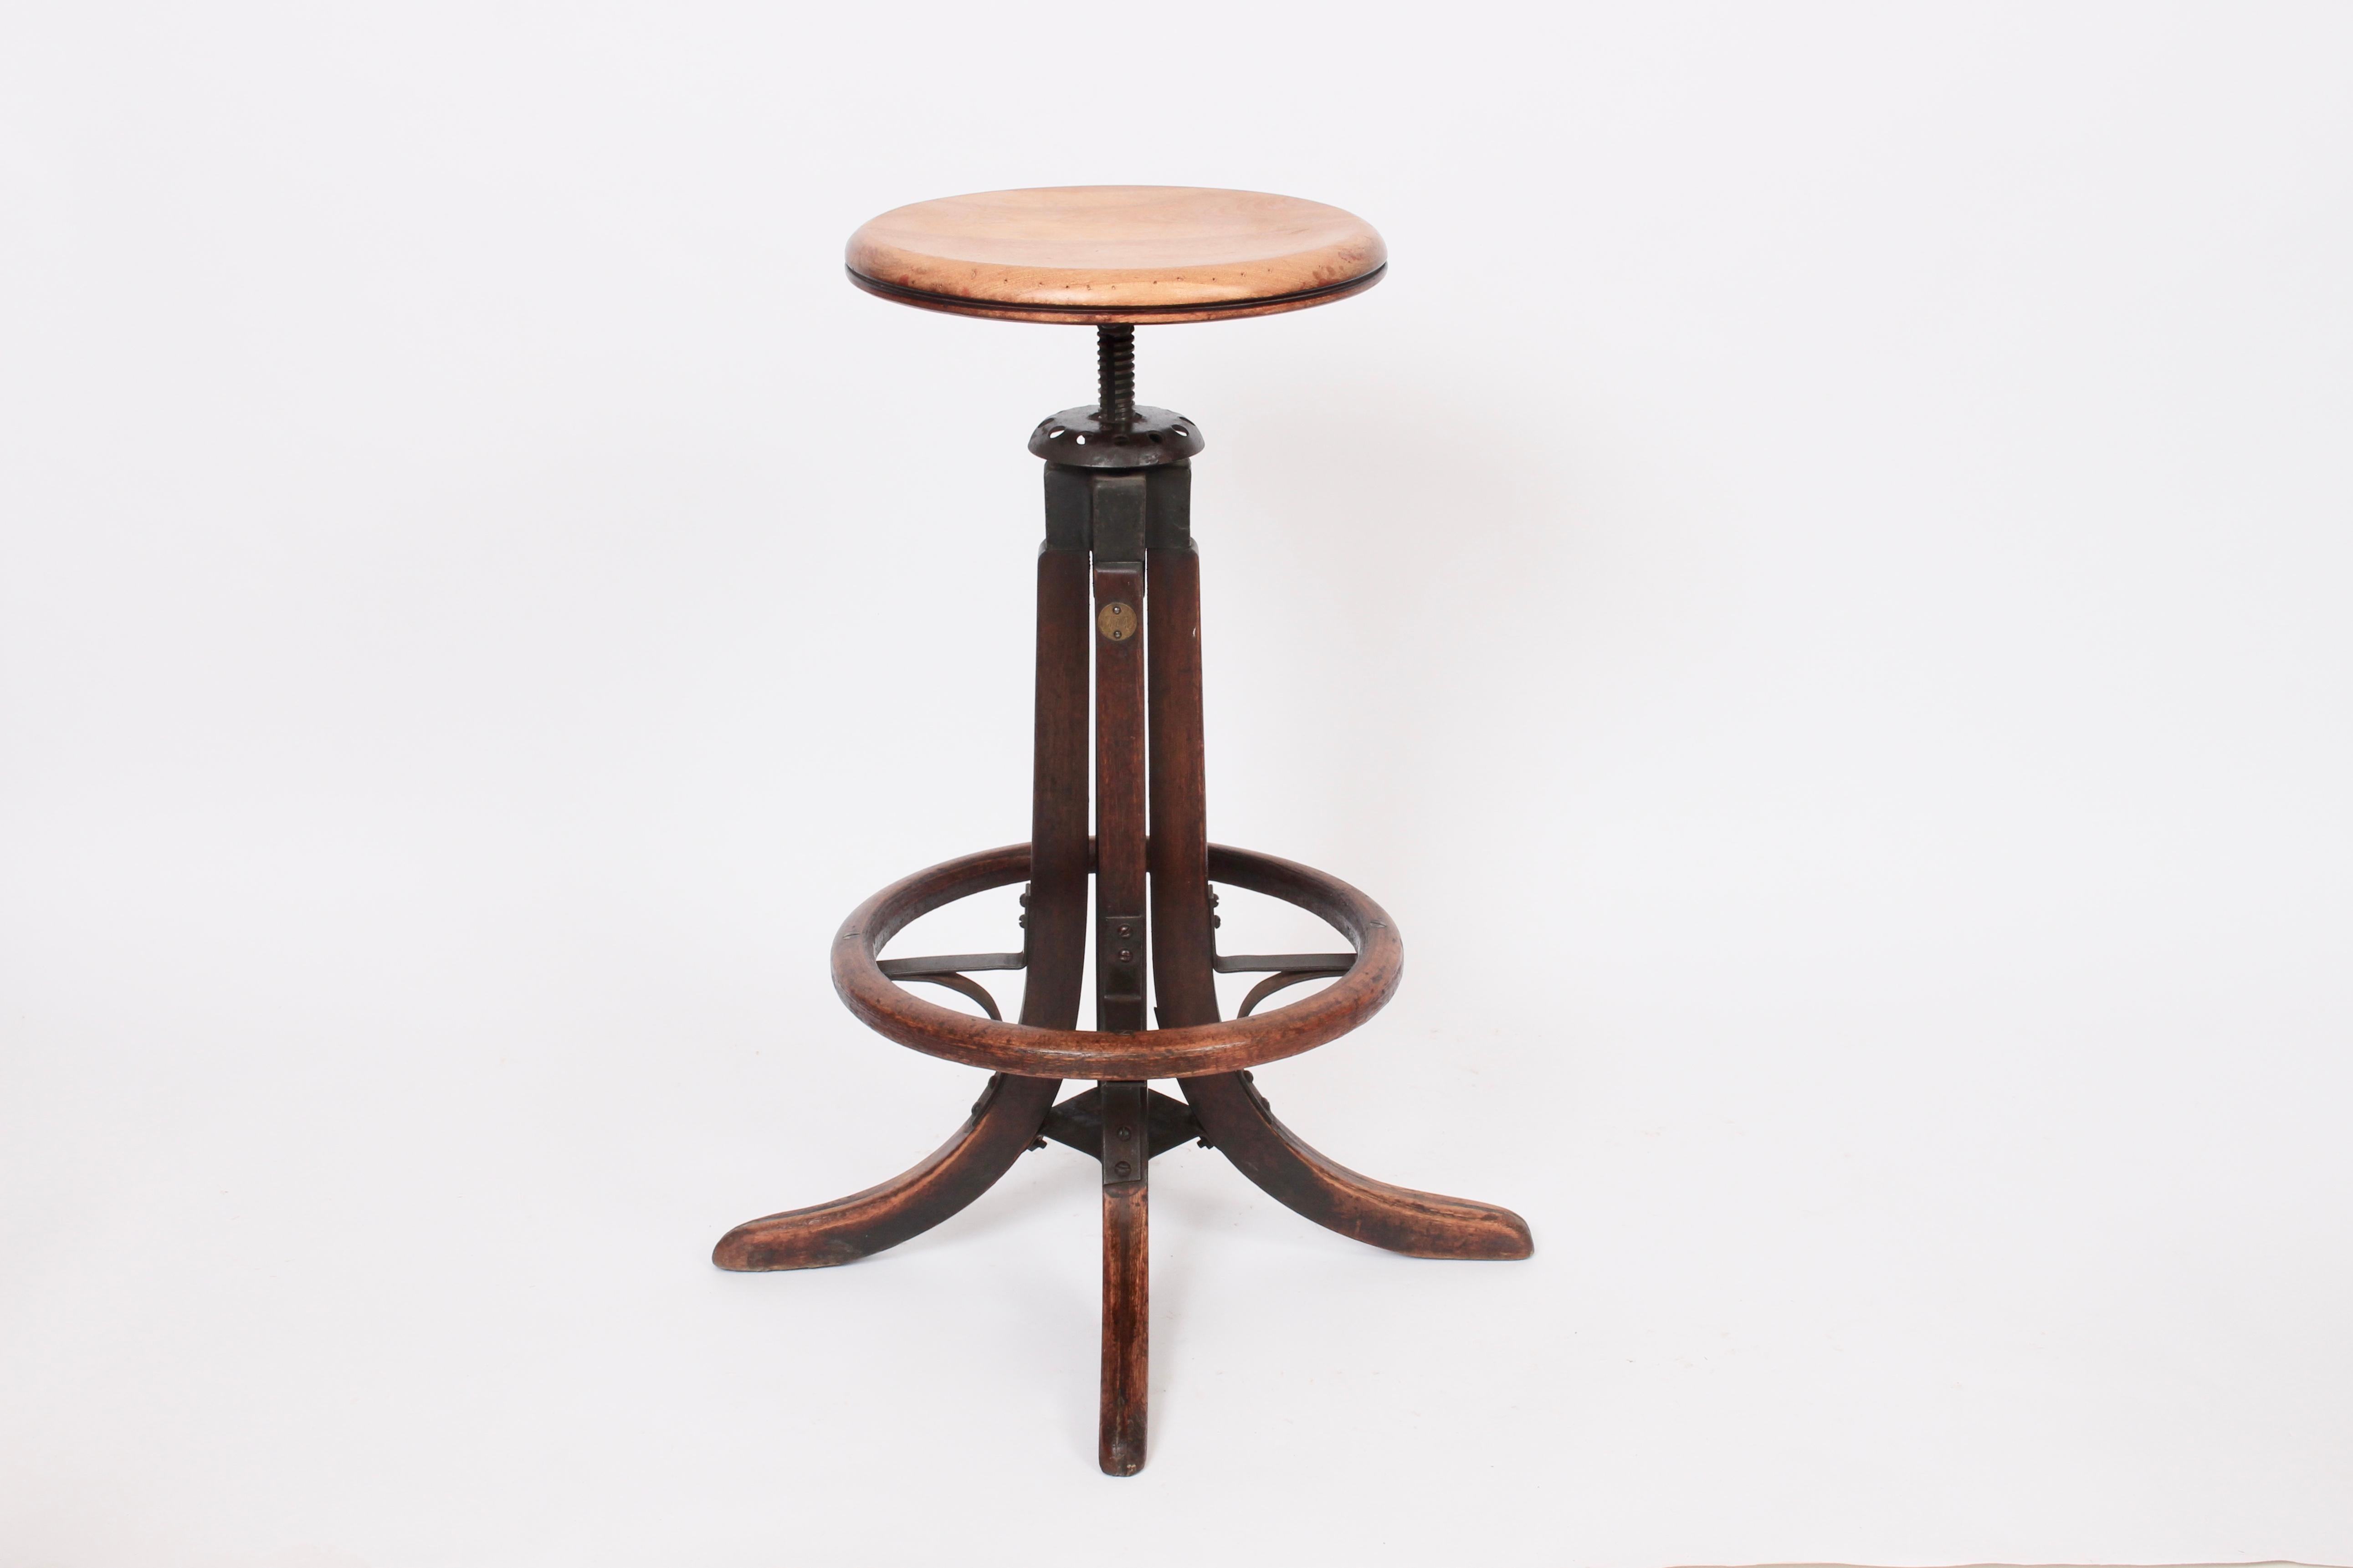 Super Oak Bentwood Adjustable Swivel Draftsman Stool With Foot Ring Circa 1920 Pabps2019 Chair Design Images Pabps2019Com